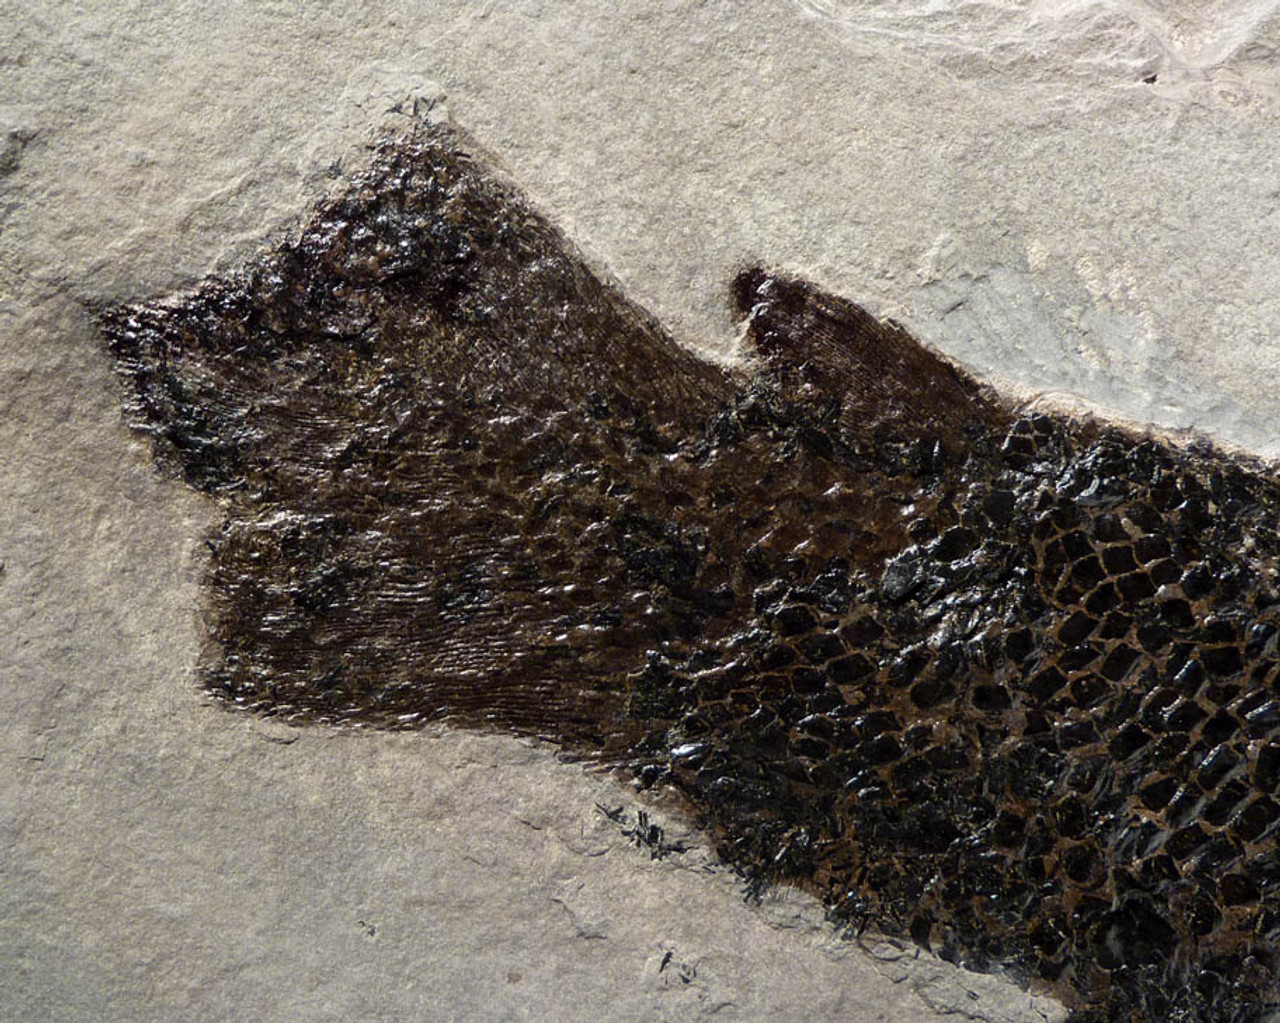 DEVONIAN FISH FOSSIL